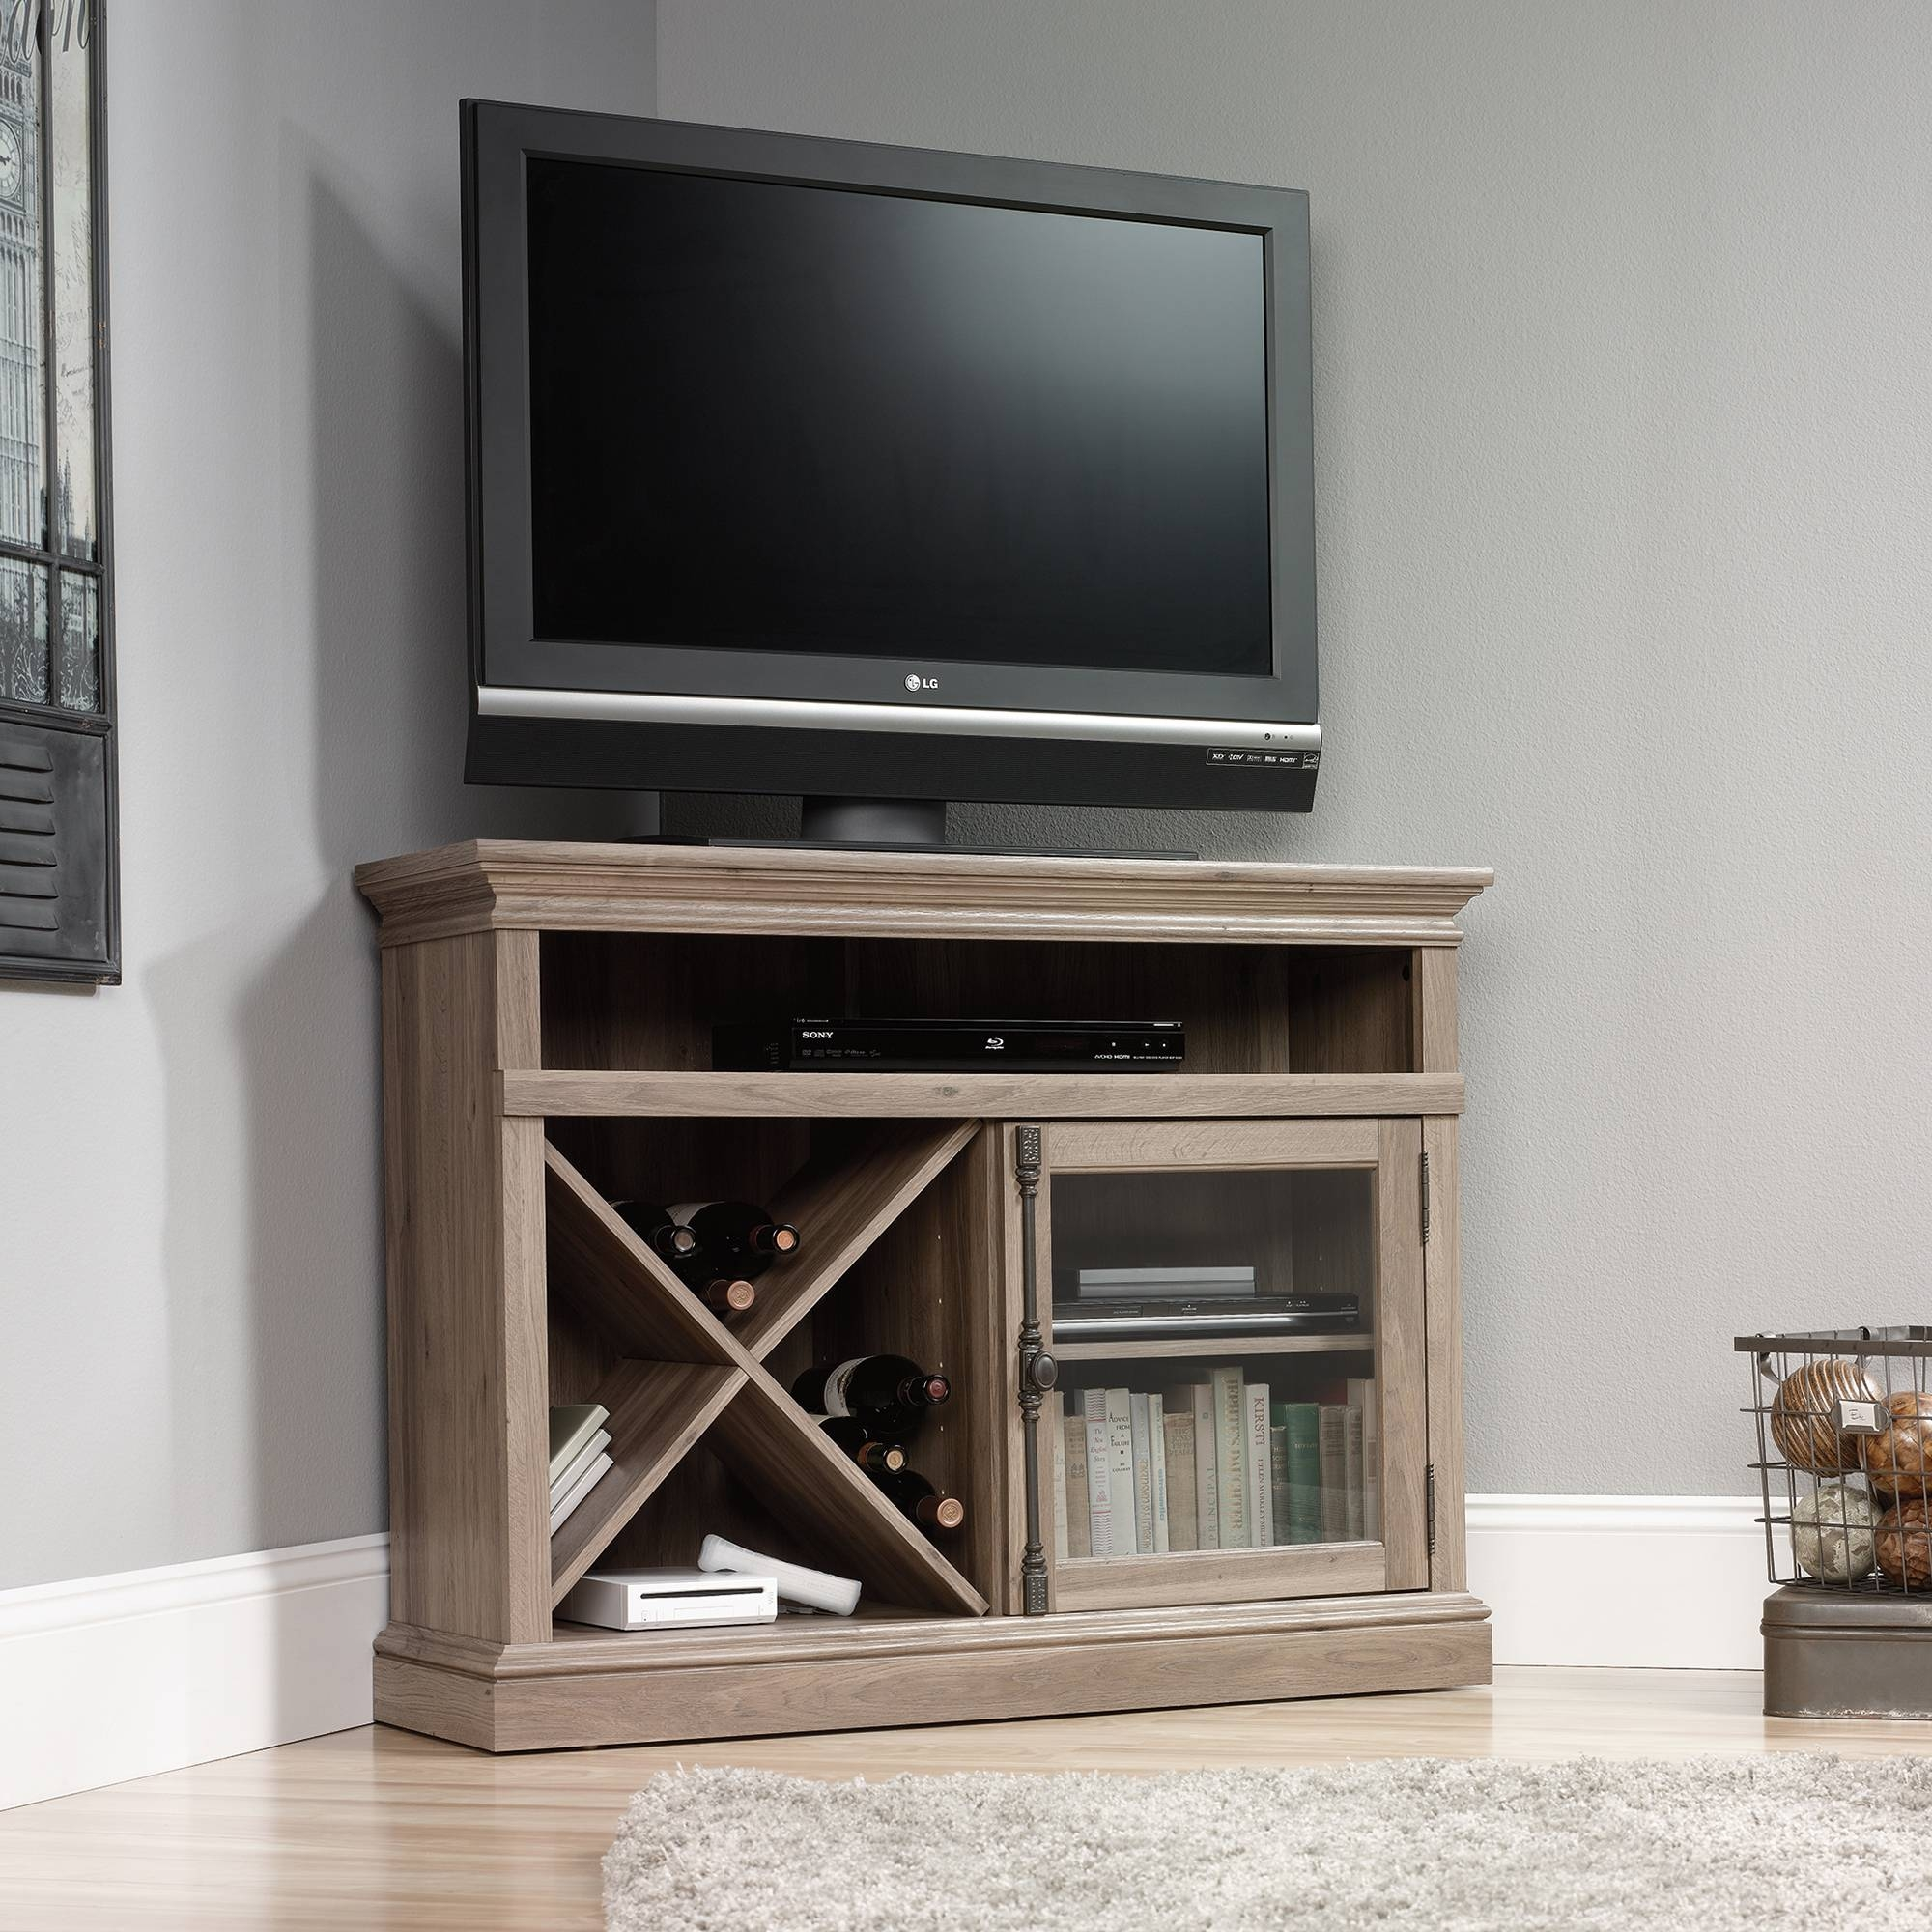 Wooden Corner Tv Stand With Single Glass Cabinet Door And Lattice for Corner Tv Cabinets With Glass Doors (Image 15 of 15)